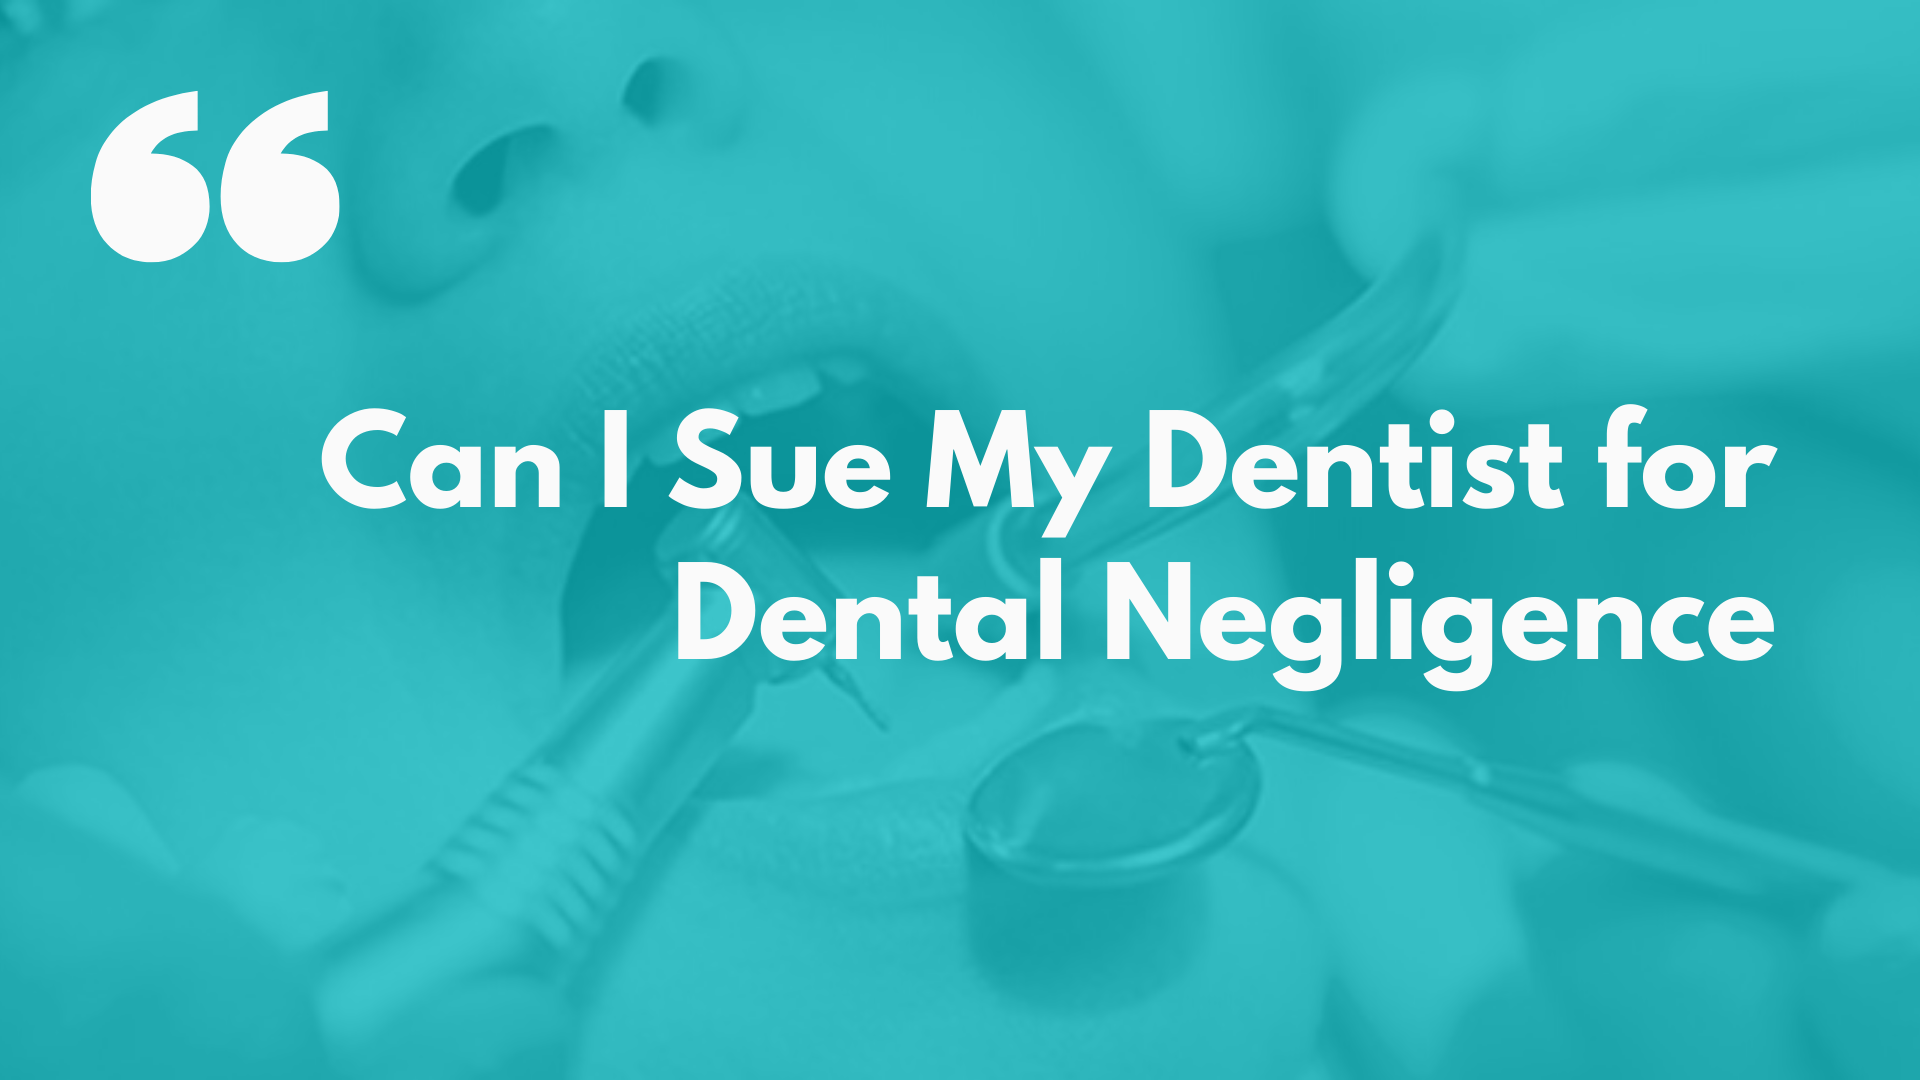 Sue the Dentist for Dental Negligence